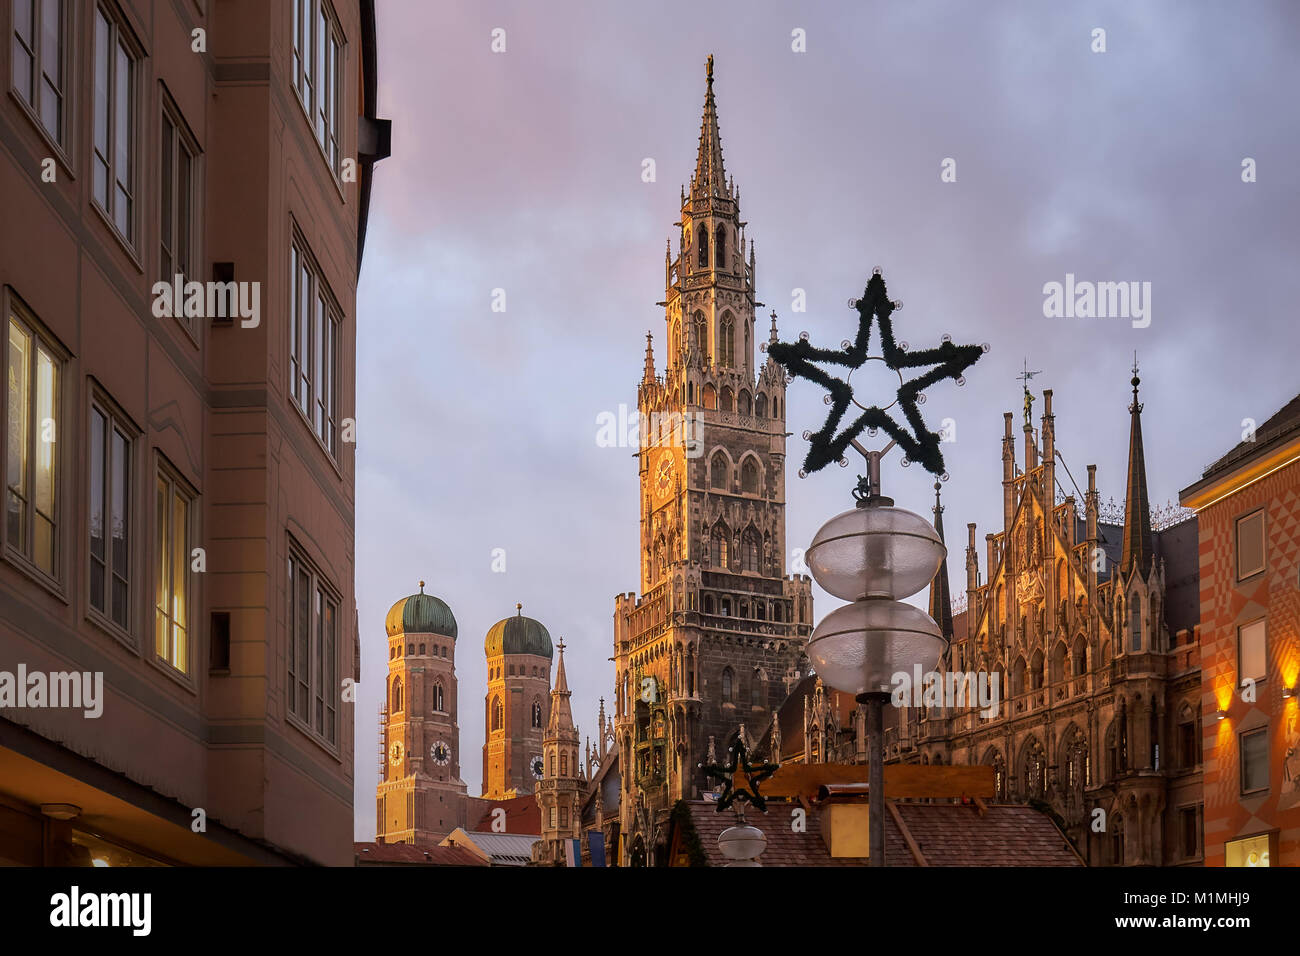 Marienplatz square in Munich with New Town Hall (Rathaus) and The Frauenkirche church in frame - Stock Image